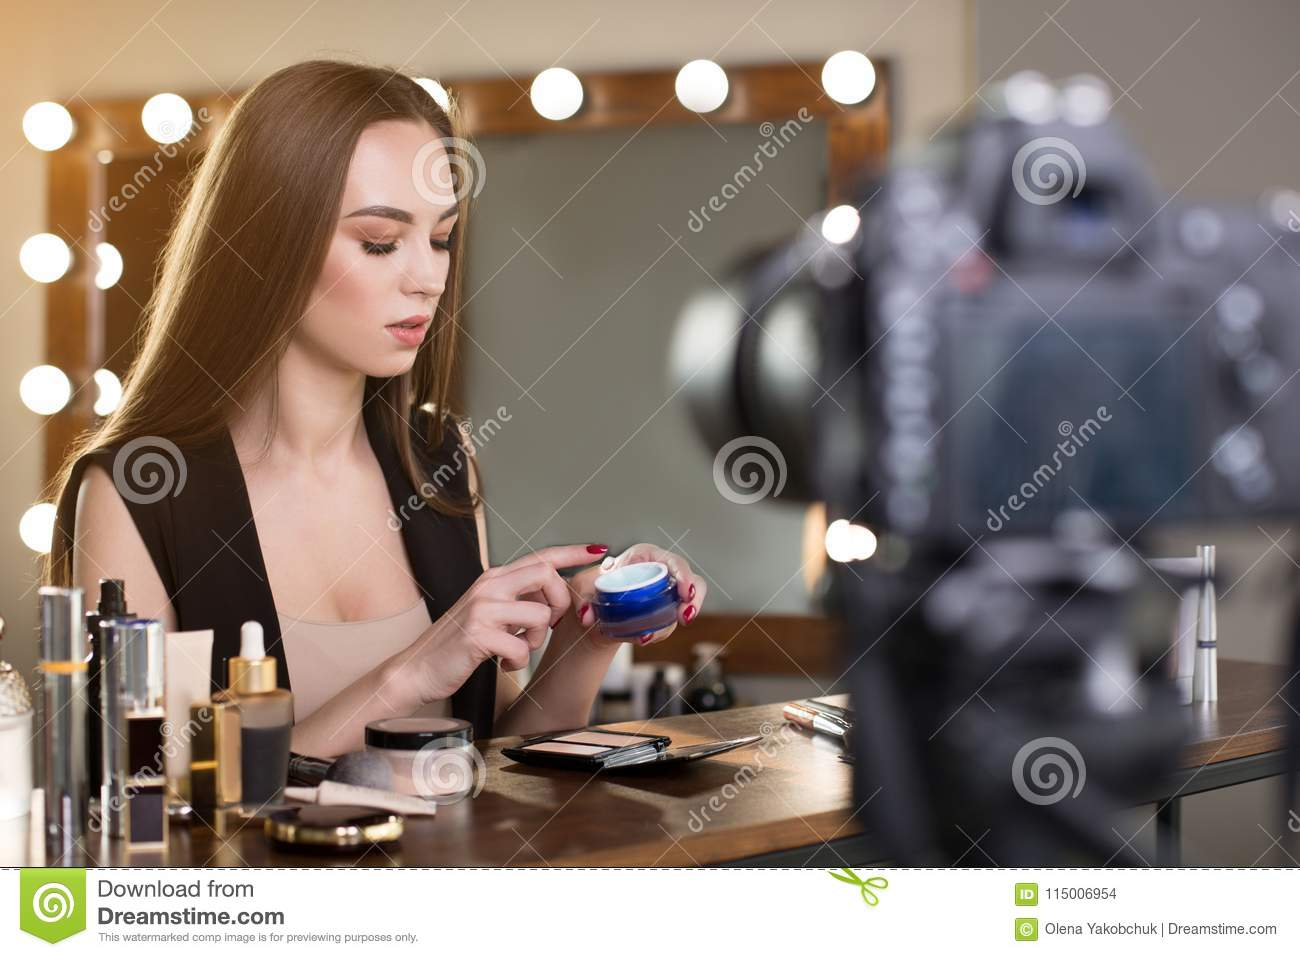 young beauty blogger with makeup tutorial stock photo - image of